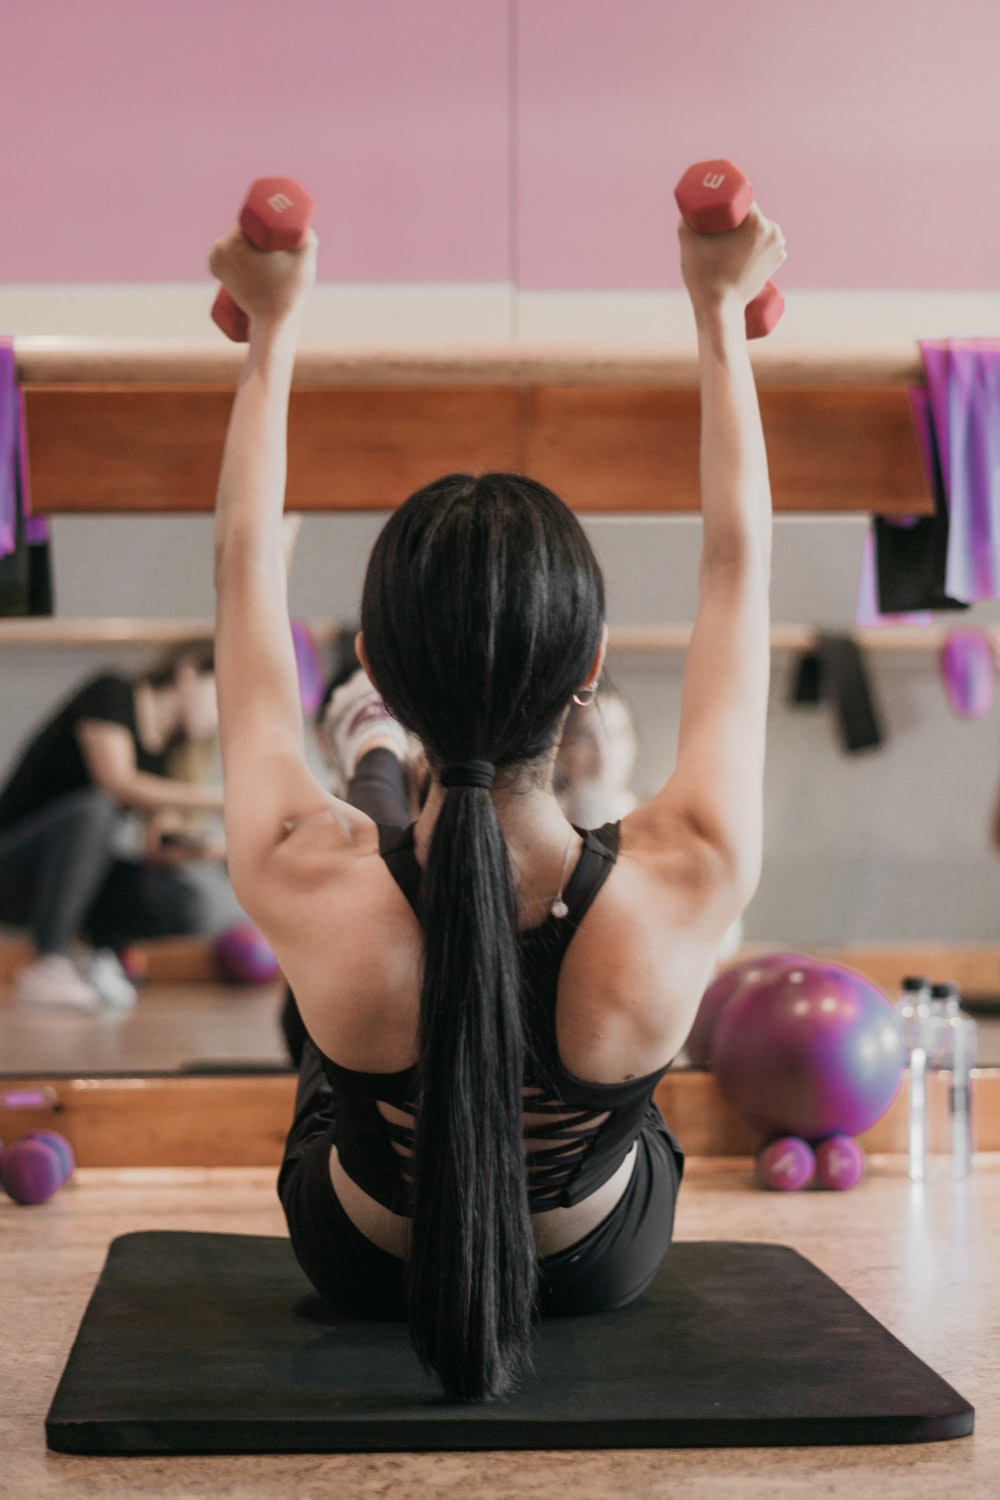 woman in black tank top and black shorts doing yoga